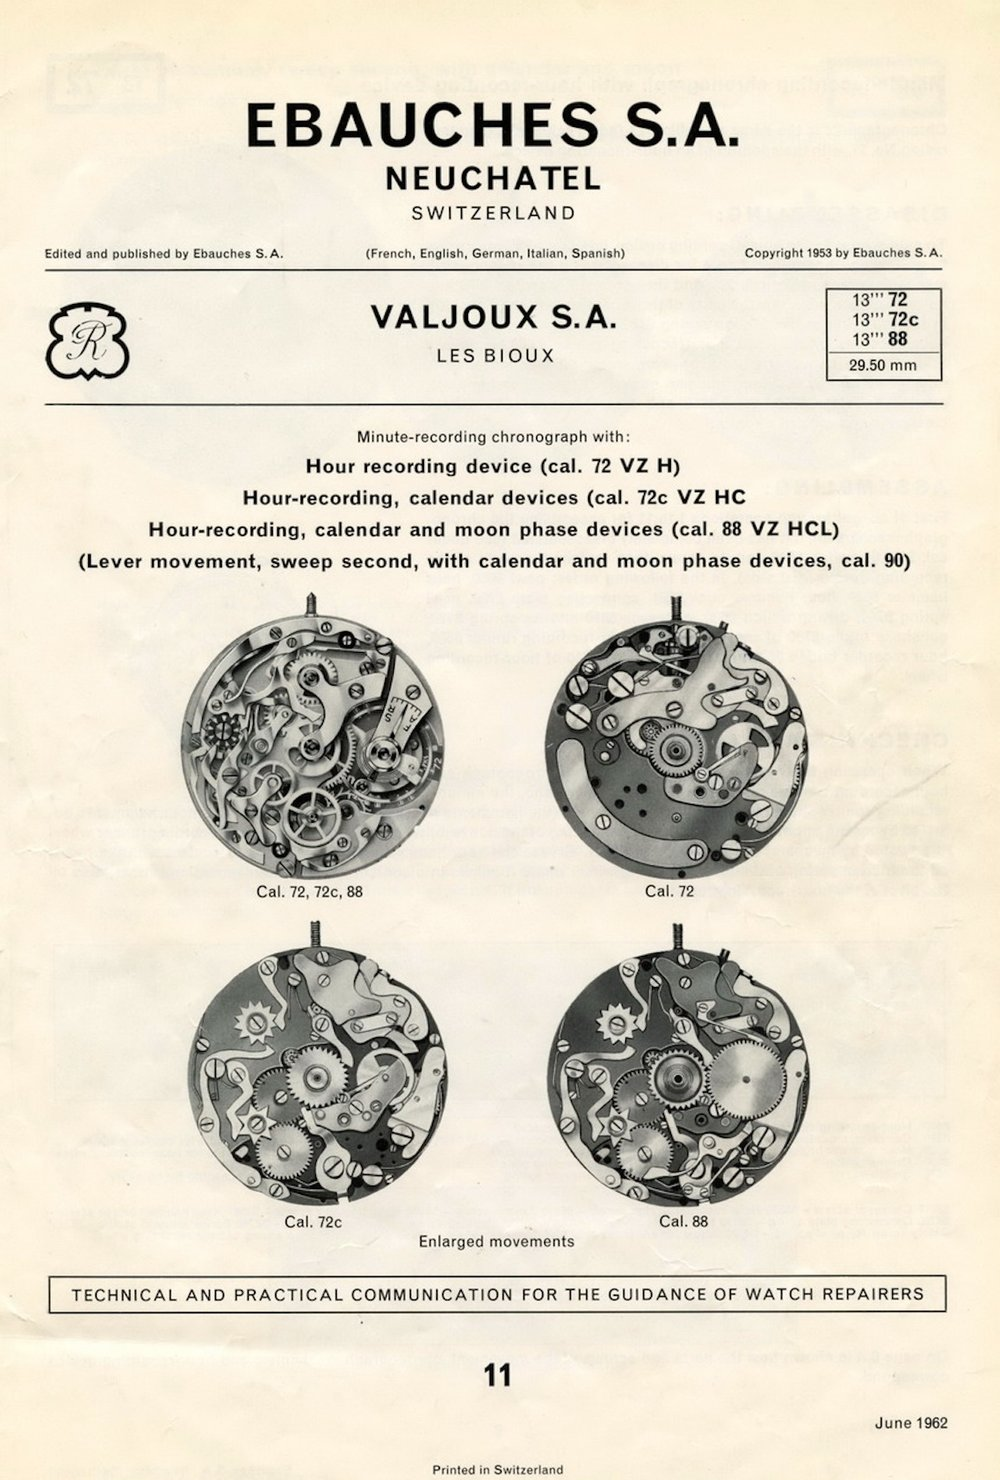 Original Valjoux technical sheets from 1962